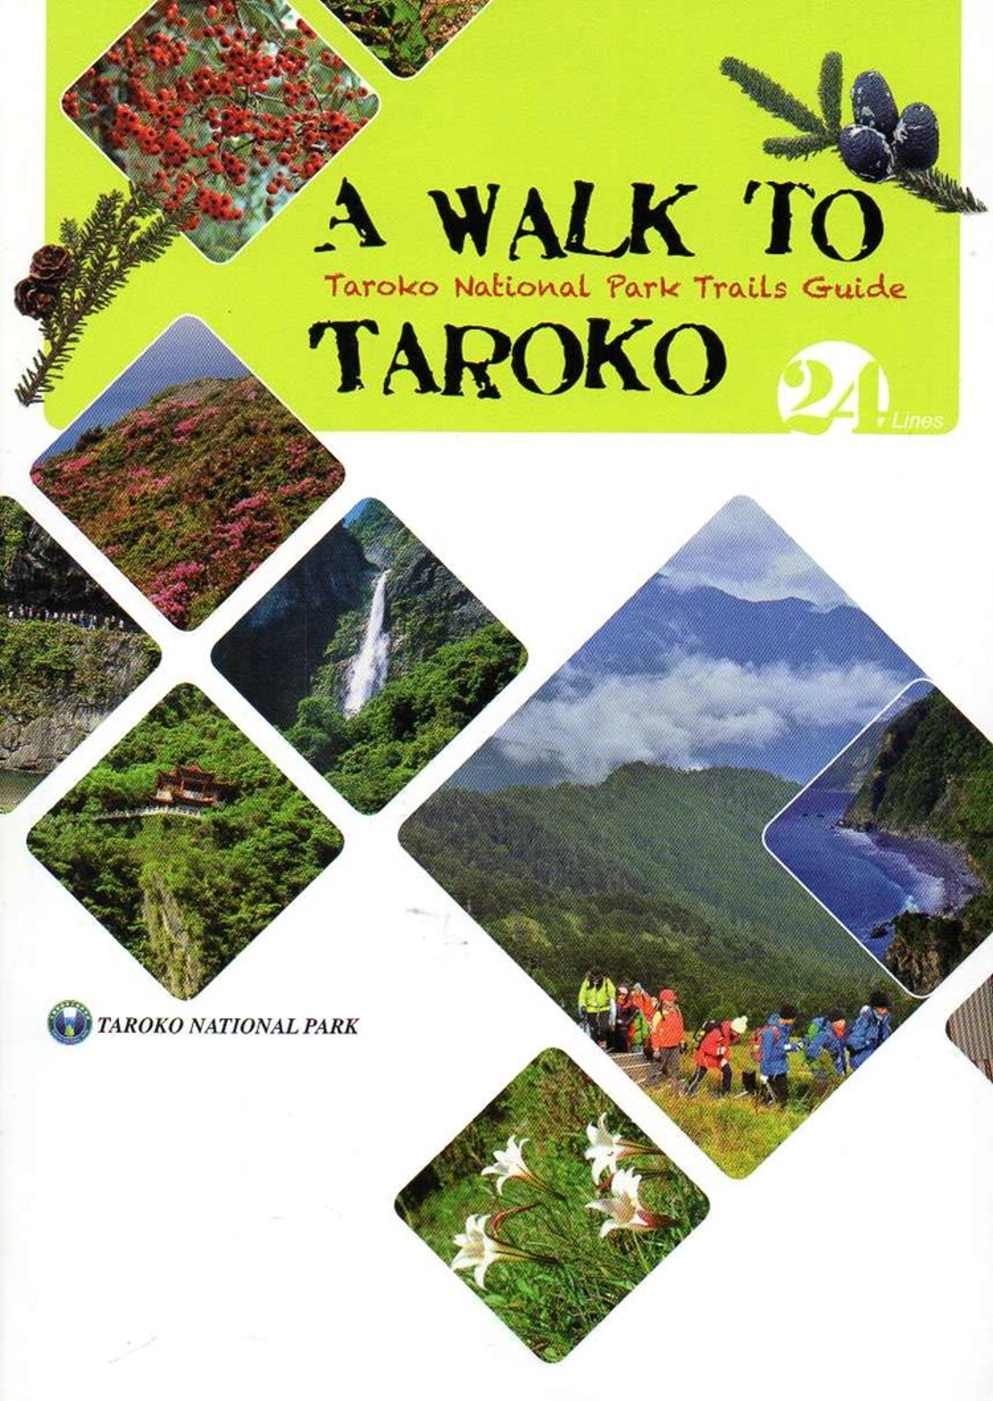 A WALK TO TAROKO ~ Taroko National Park Trail